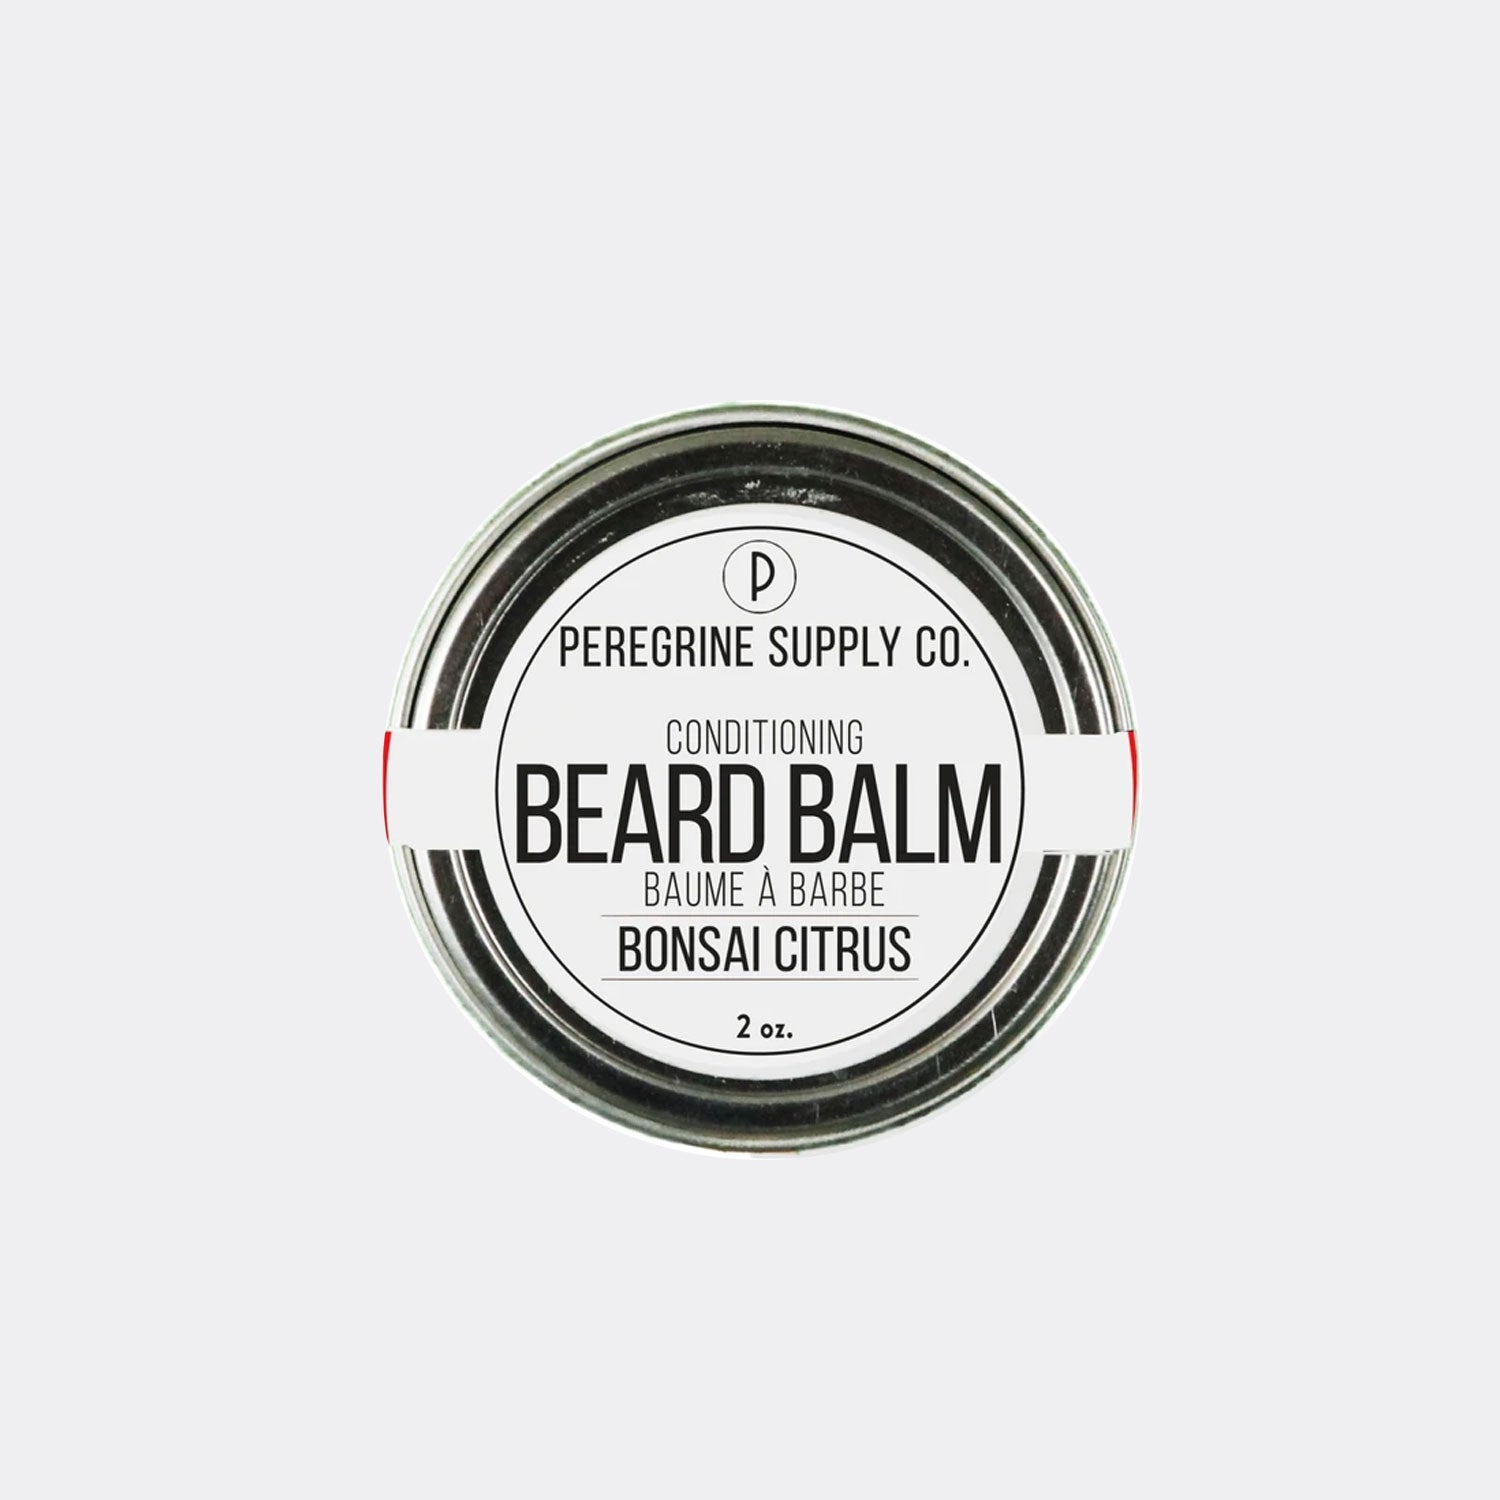 Peregrine Supply Co. Bonsai Citrus Beard Balm